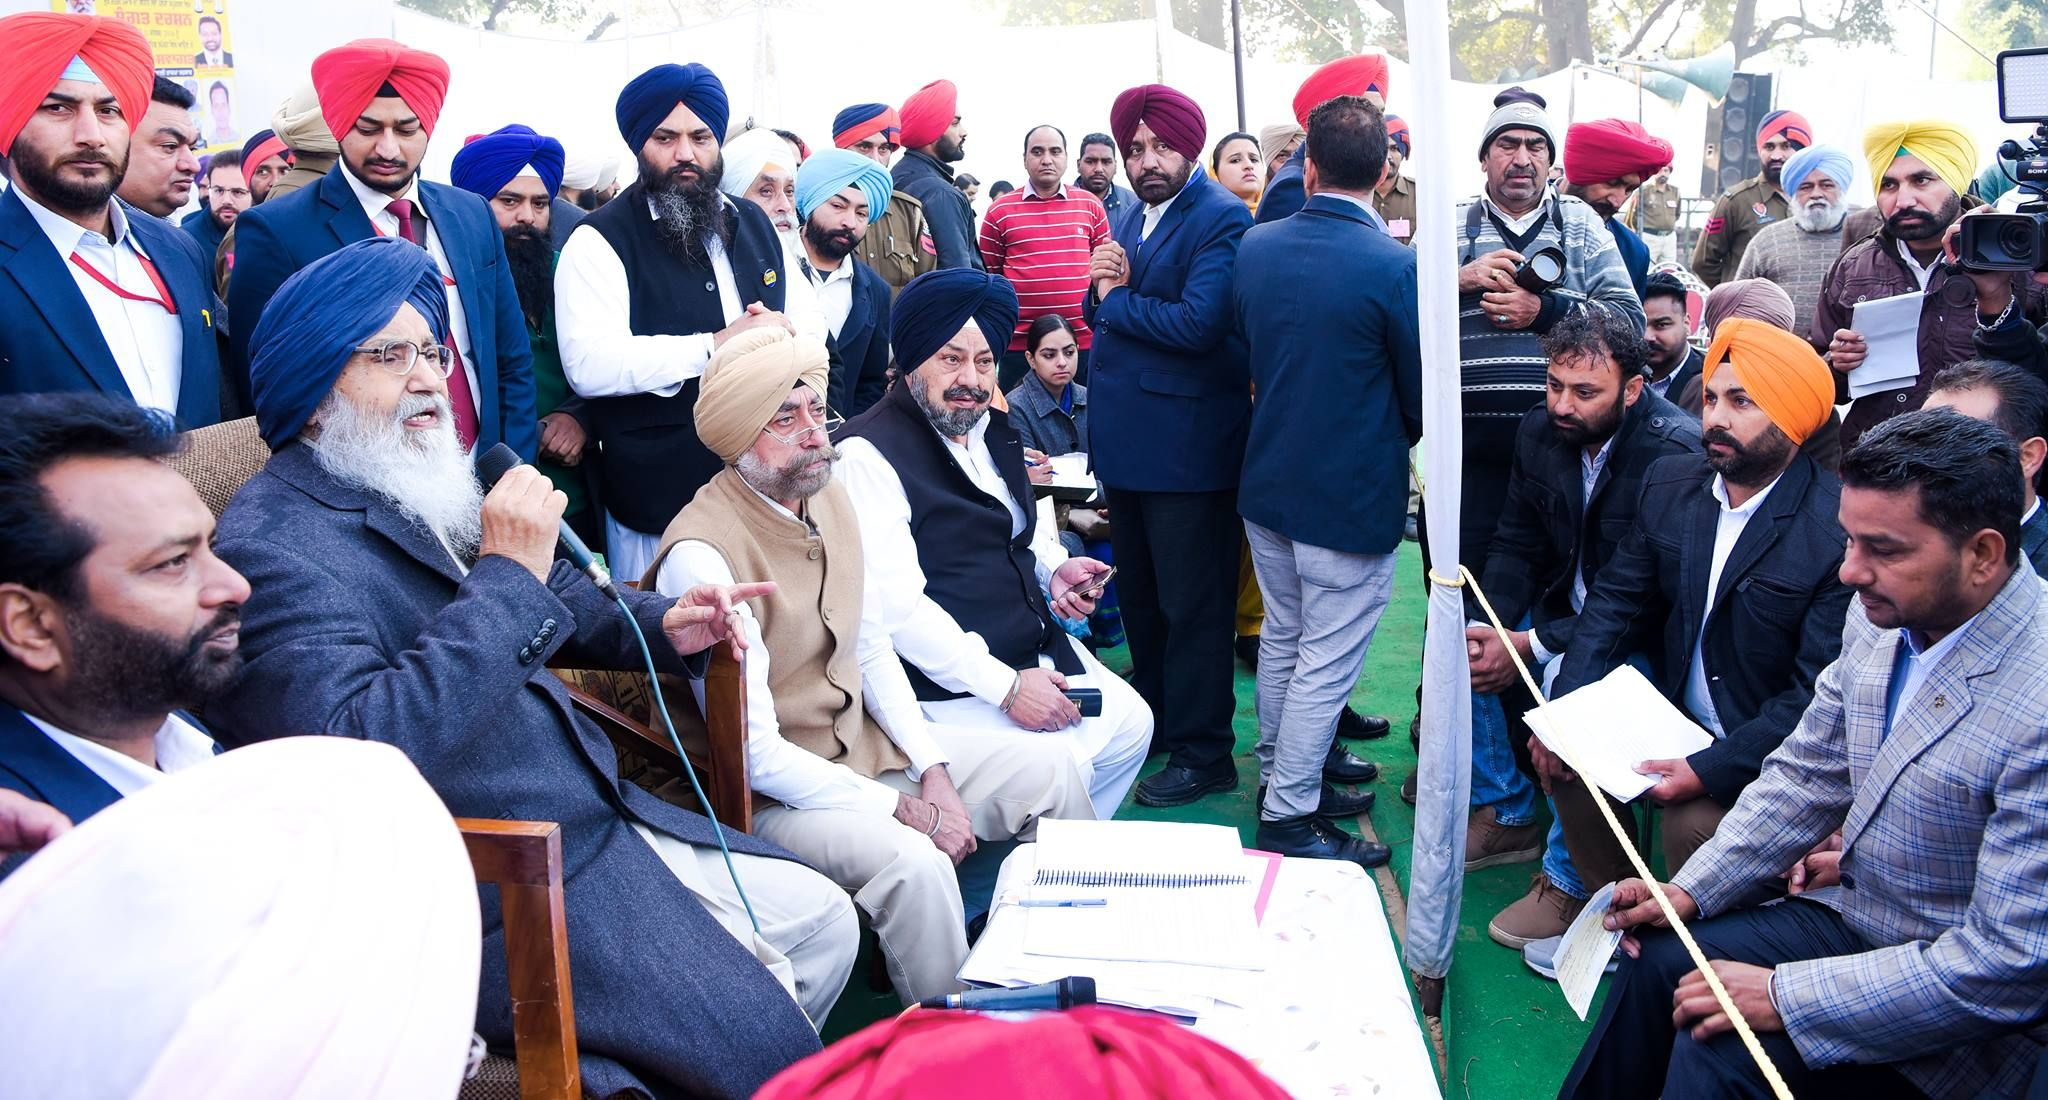 In a bid to promote tourism in the royal city of Kapurthala, the Punjab Chief Minister Mr. Parkash Singh Badal yesterday said that the state government would make all out efforts to give facelift to the Kanjli wetland. Interacting with the people during Sangat Darshan program here, the Chief Minister said that the state government was committed to develop this spot as an ideal tourist destination. #AkaliDal #ProgressivePunjab